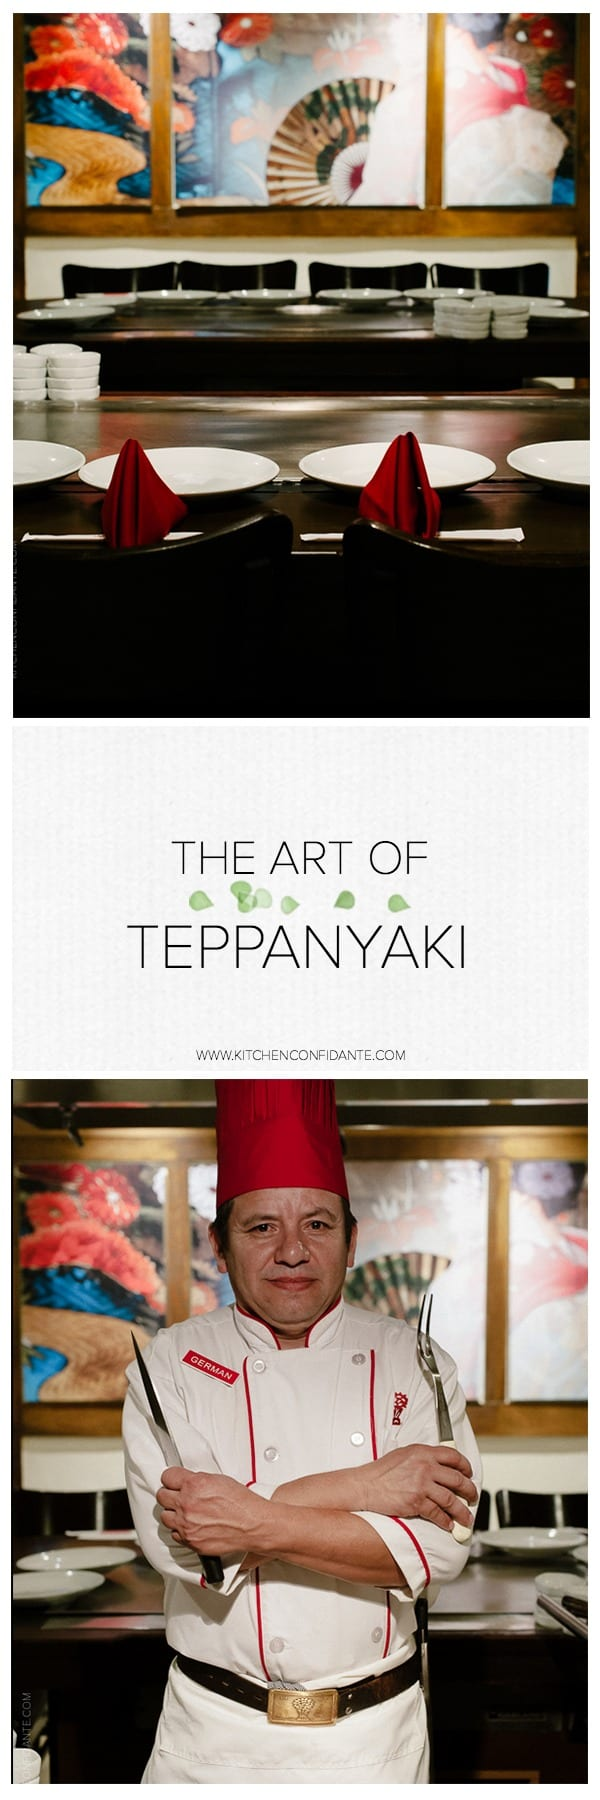 Art of Teppanyaki | www.kitchenconfidante.com | Come explore the Art of Teppanyaki.